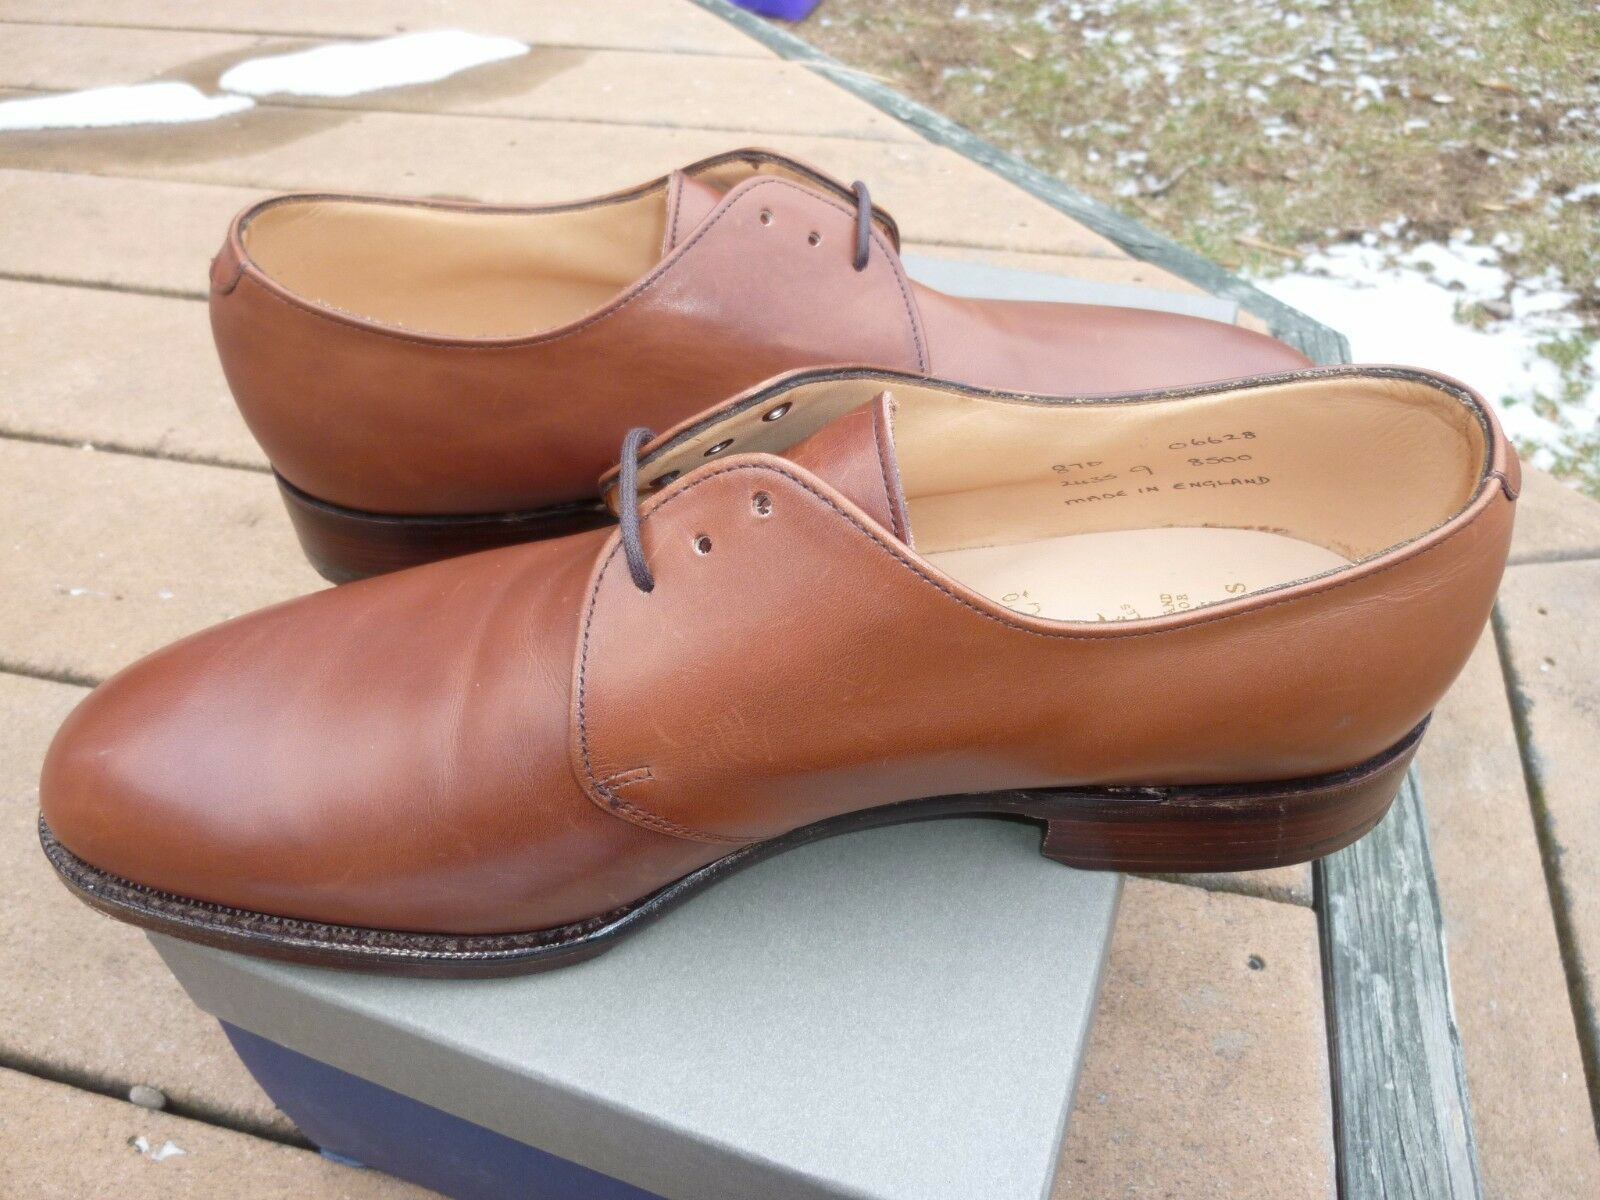 comodamente NEW  Peal Peal Peal & Co 3-Eyelet Derby Med. Marrone 9D scarpe NWB Brooks Bros Leather UK  Miglior prezzo